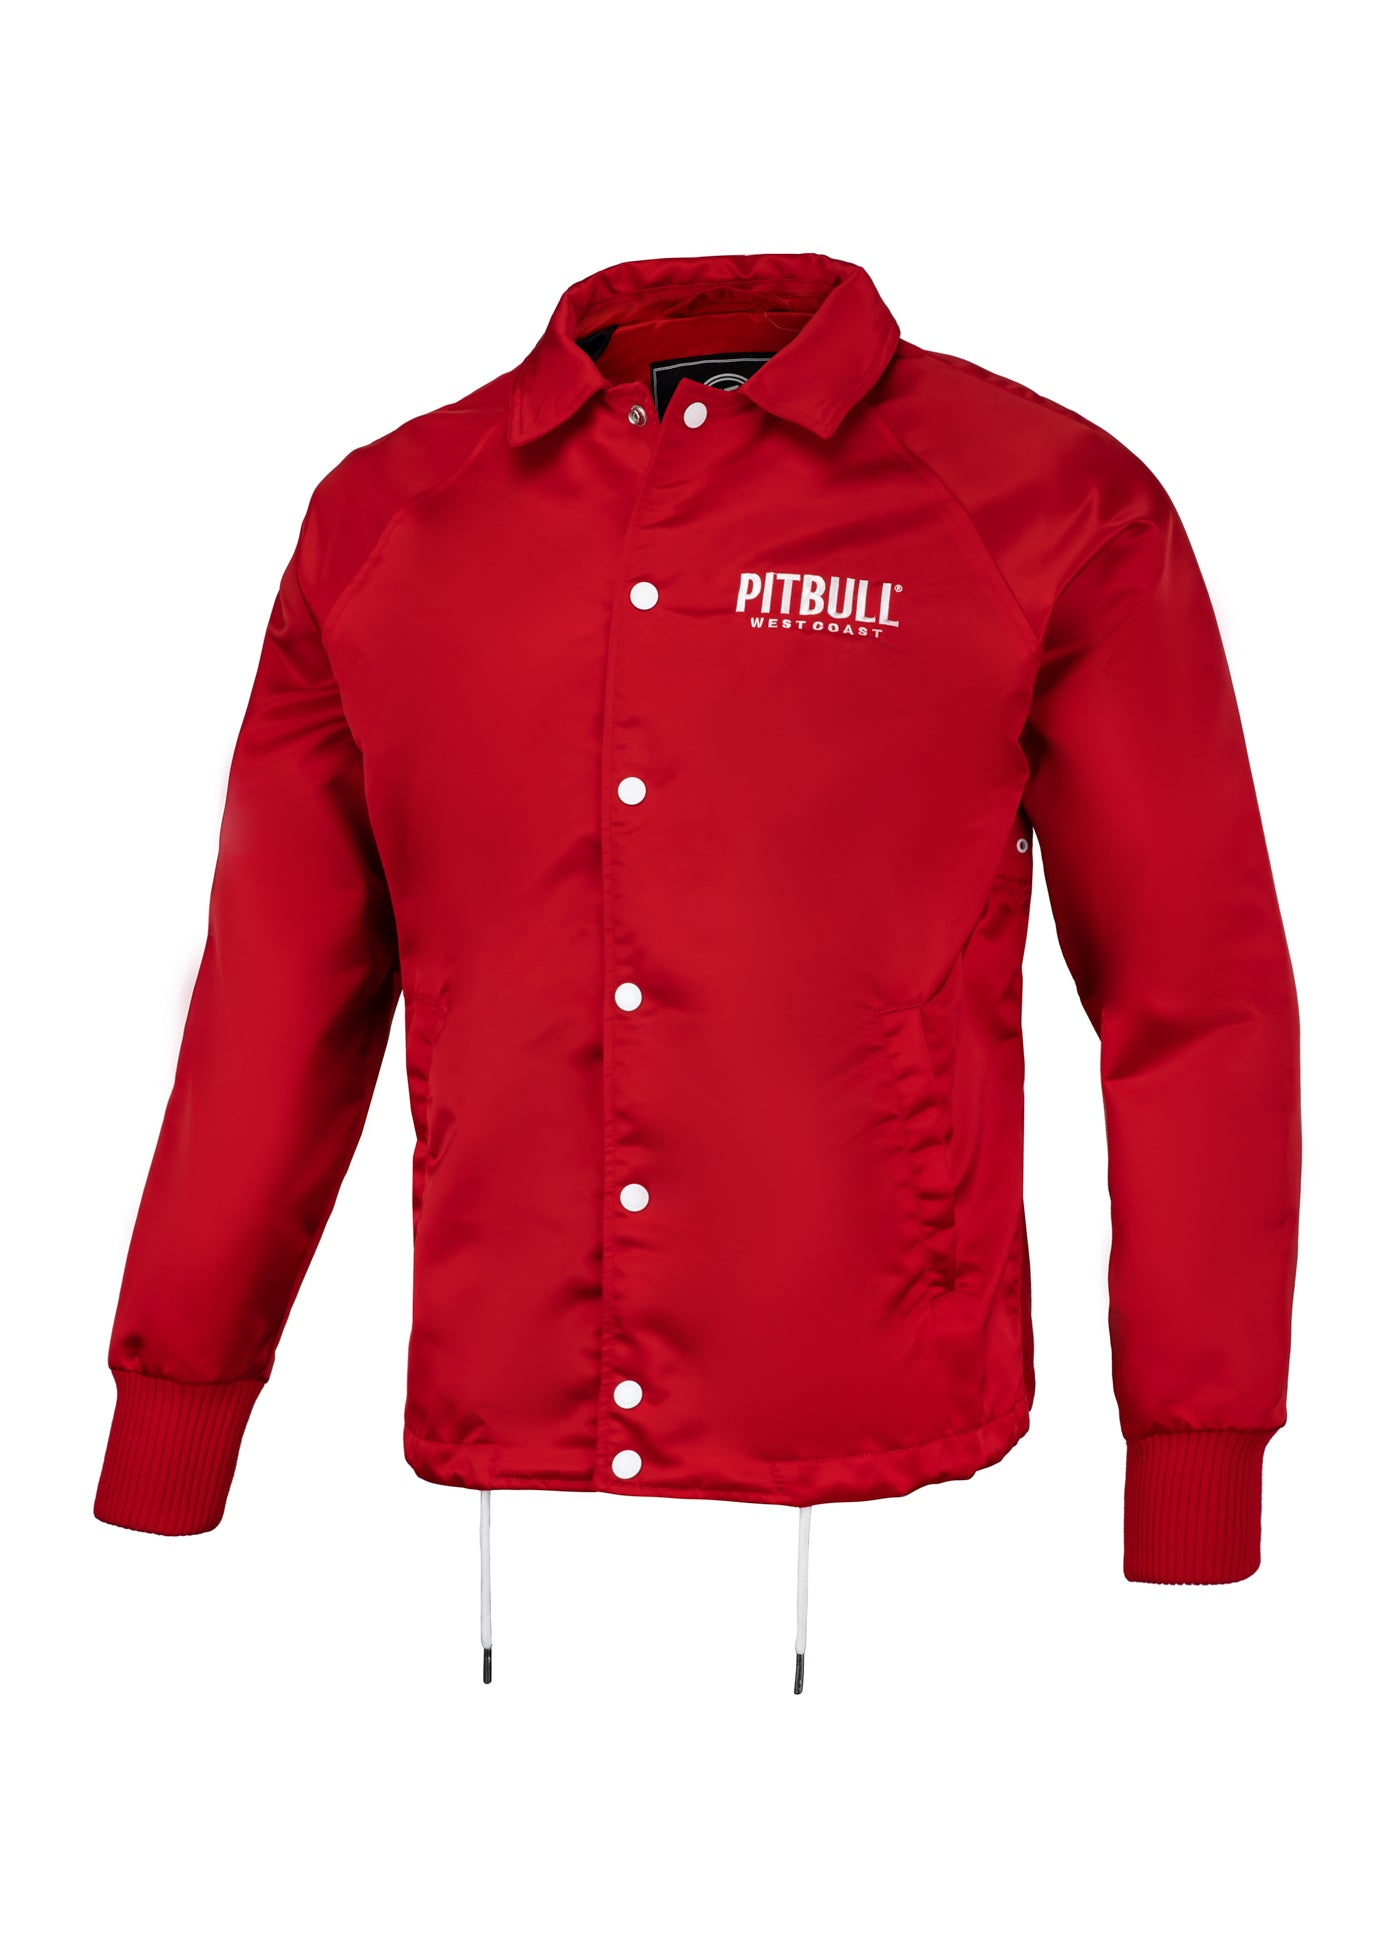 WICK Coach Jacket Red - pitbullwestcoast